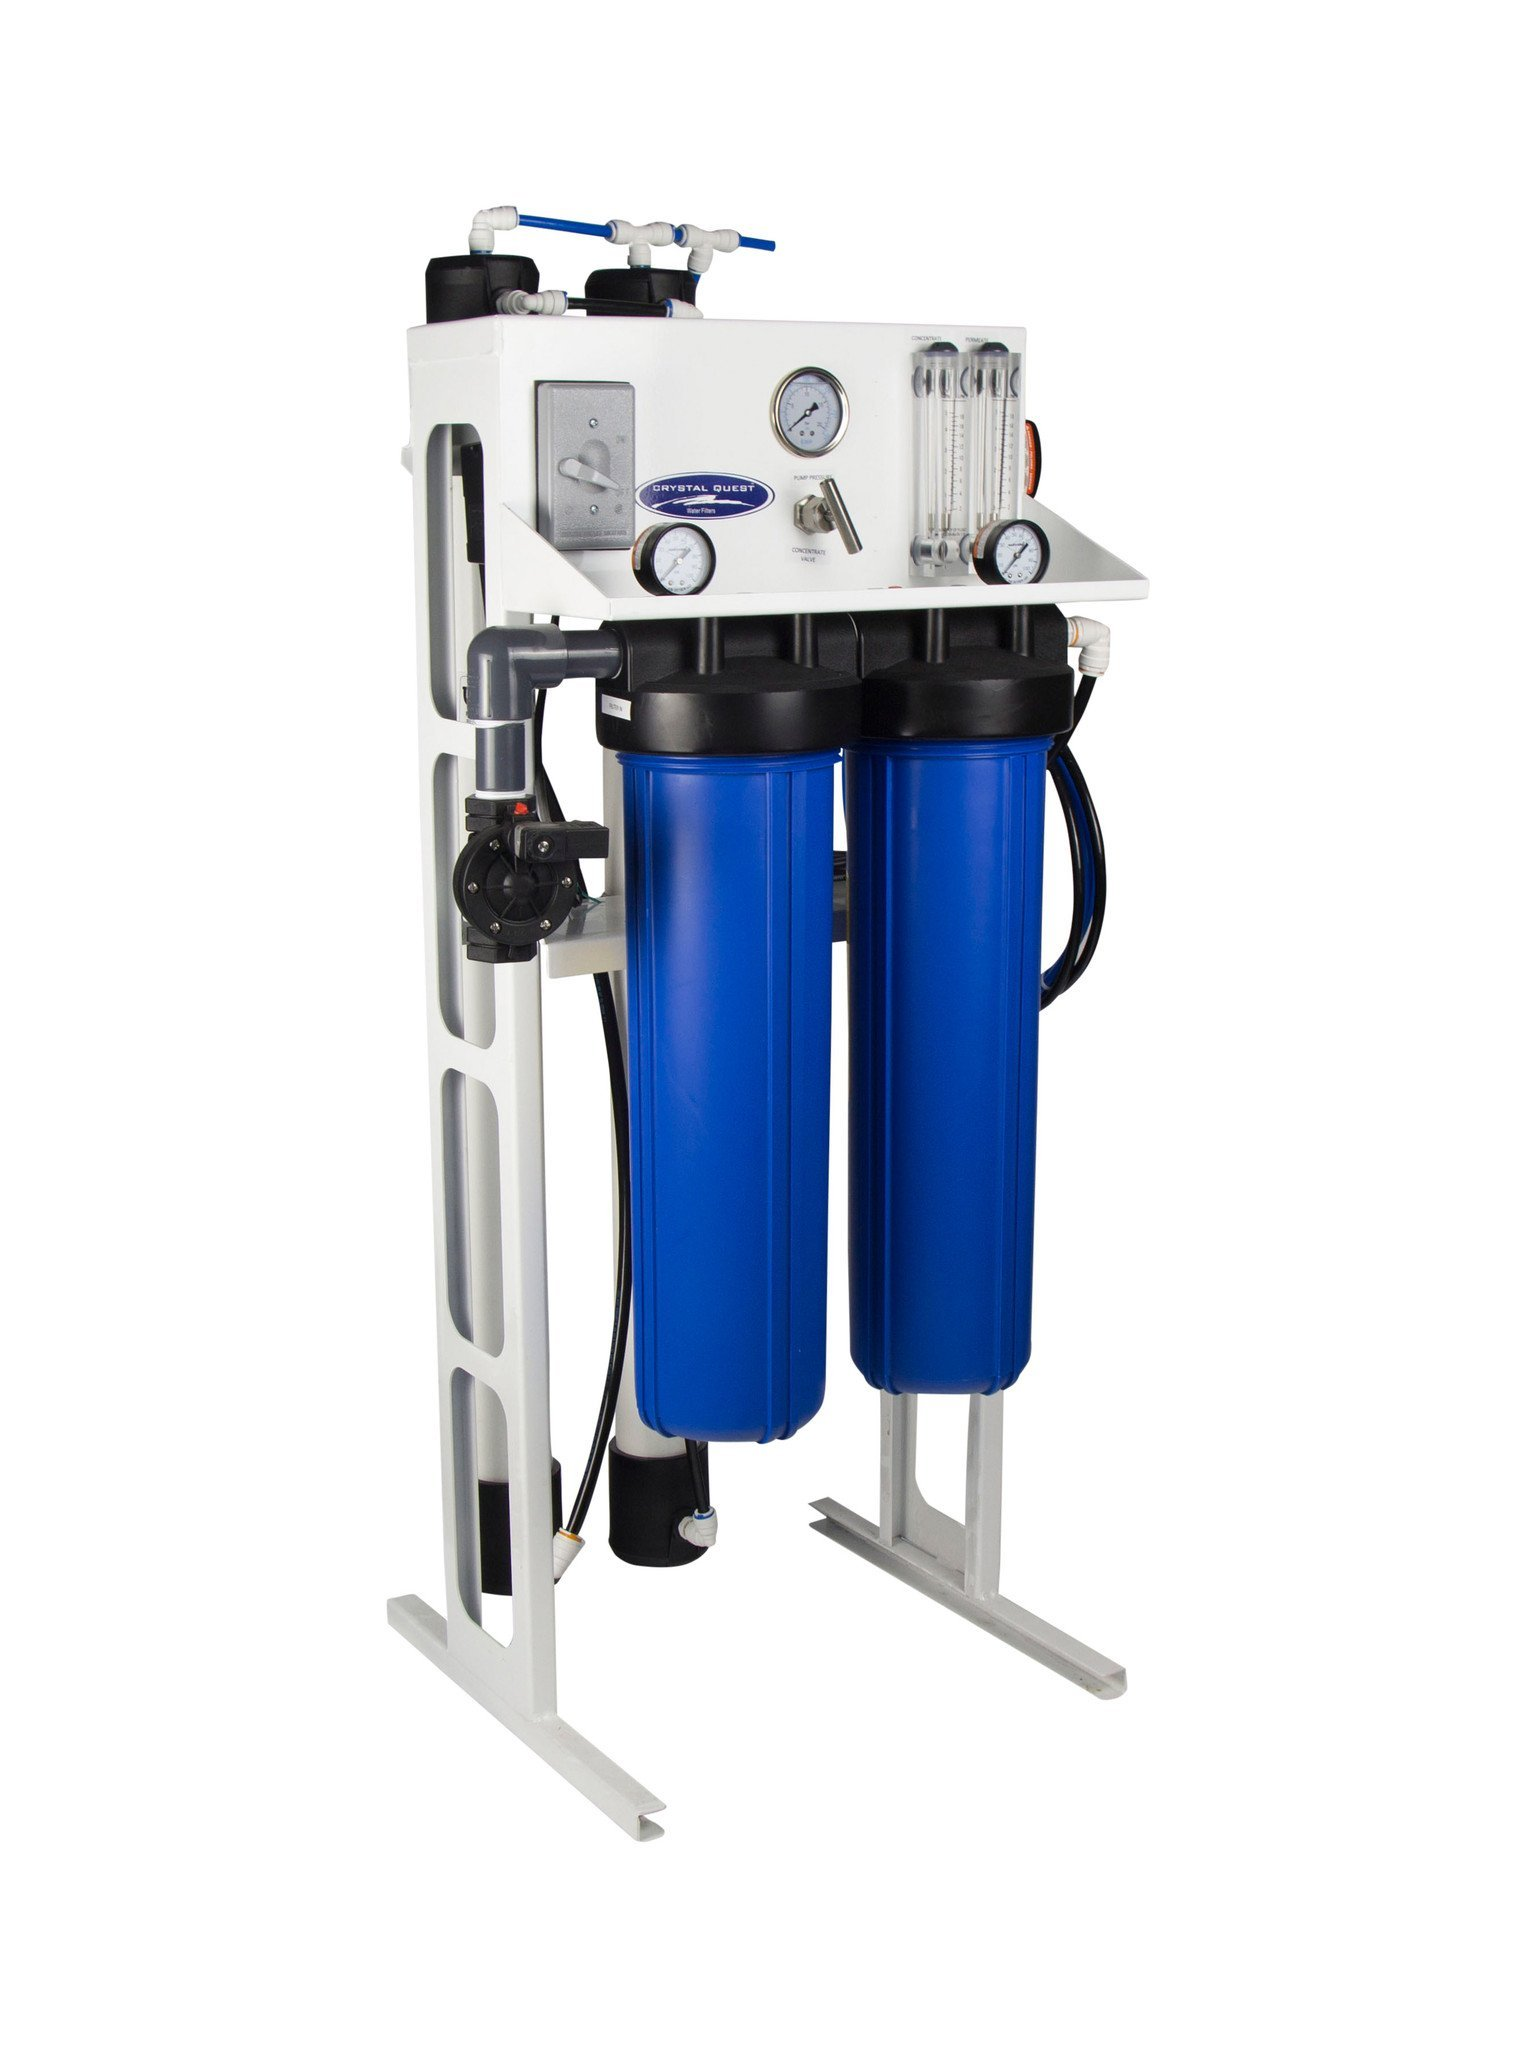 reverse osmosis commercial water filtration system 1500 gallons per day - Commercial Water Filtration System